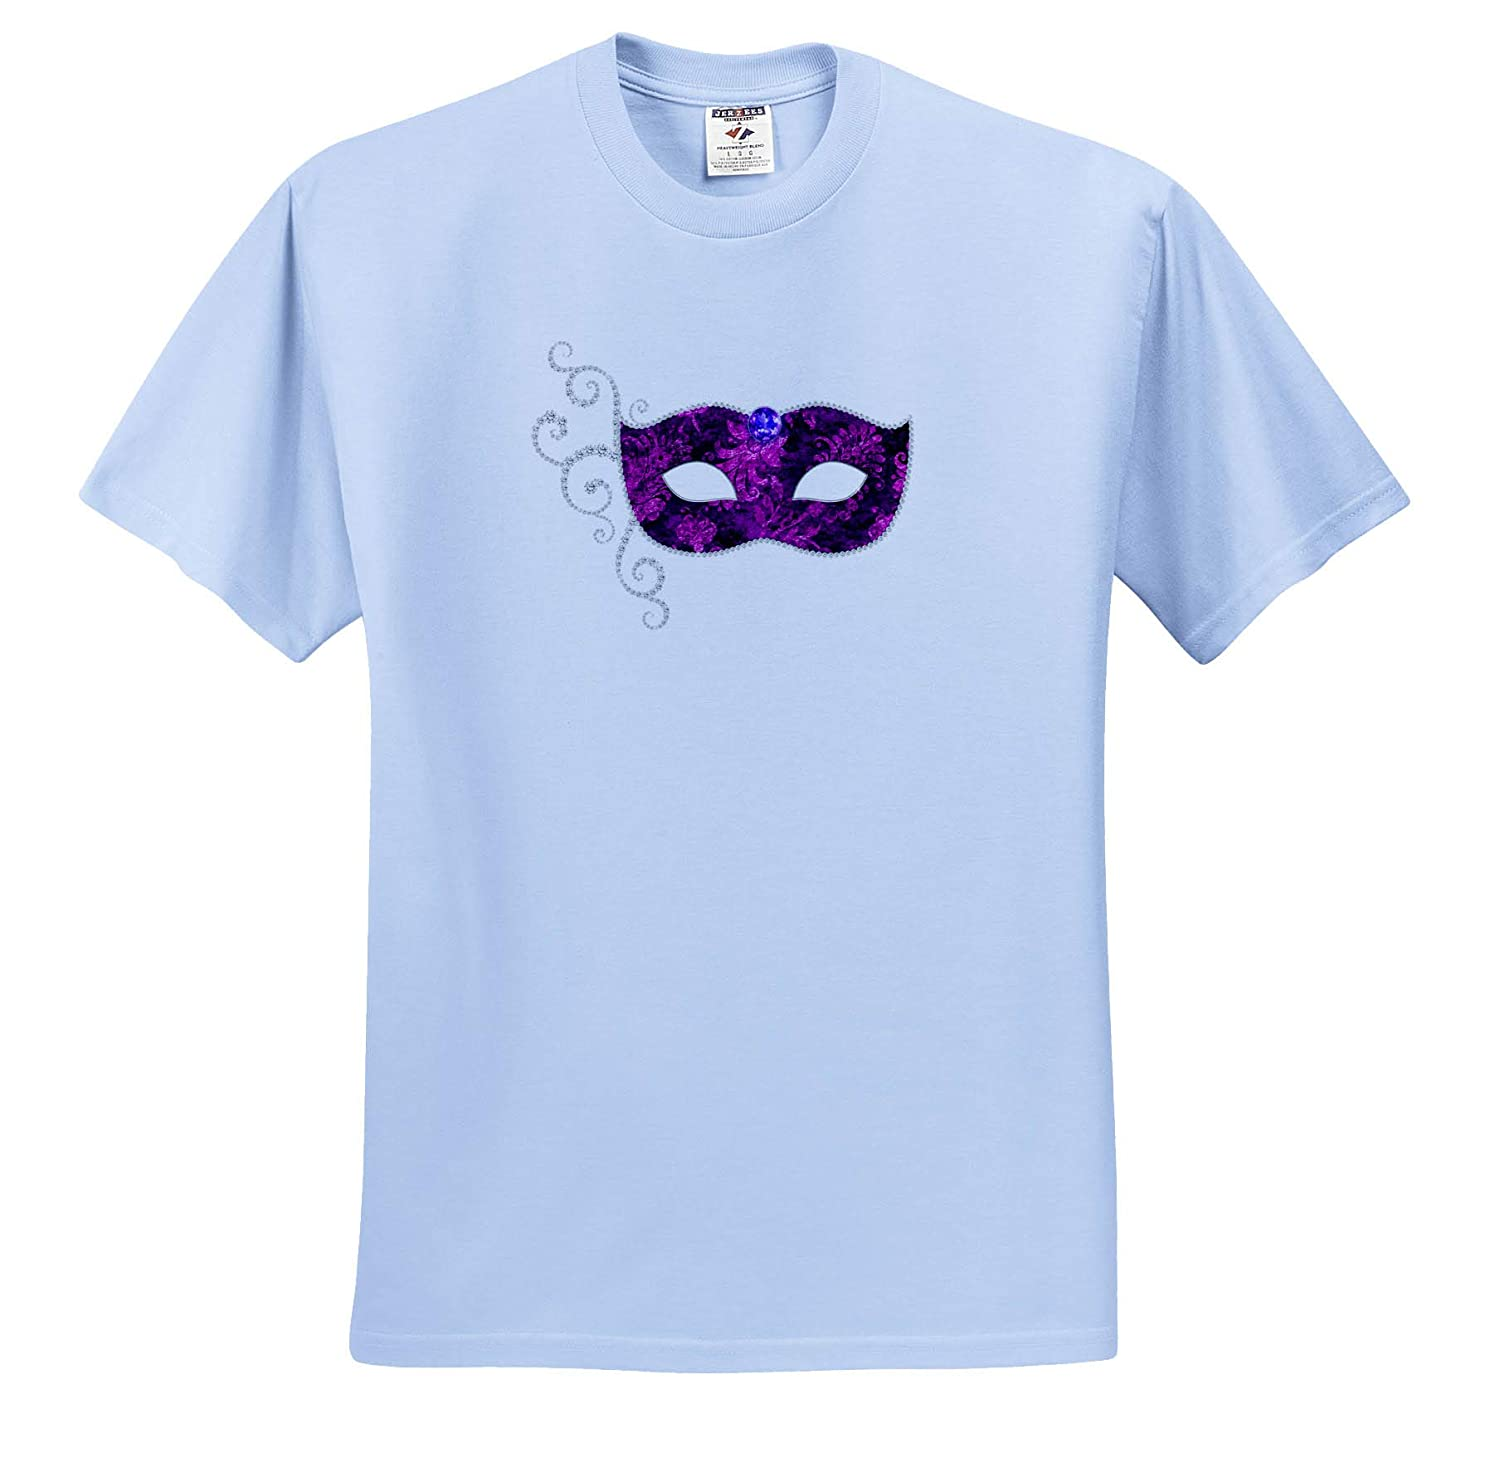 T-Shirts 3dRose Anne Marie Baugh Glam Purple and Silver Color Image of Jeweled Costume Mask Design Illustrations